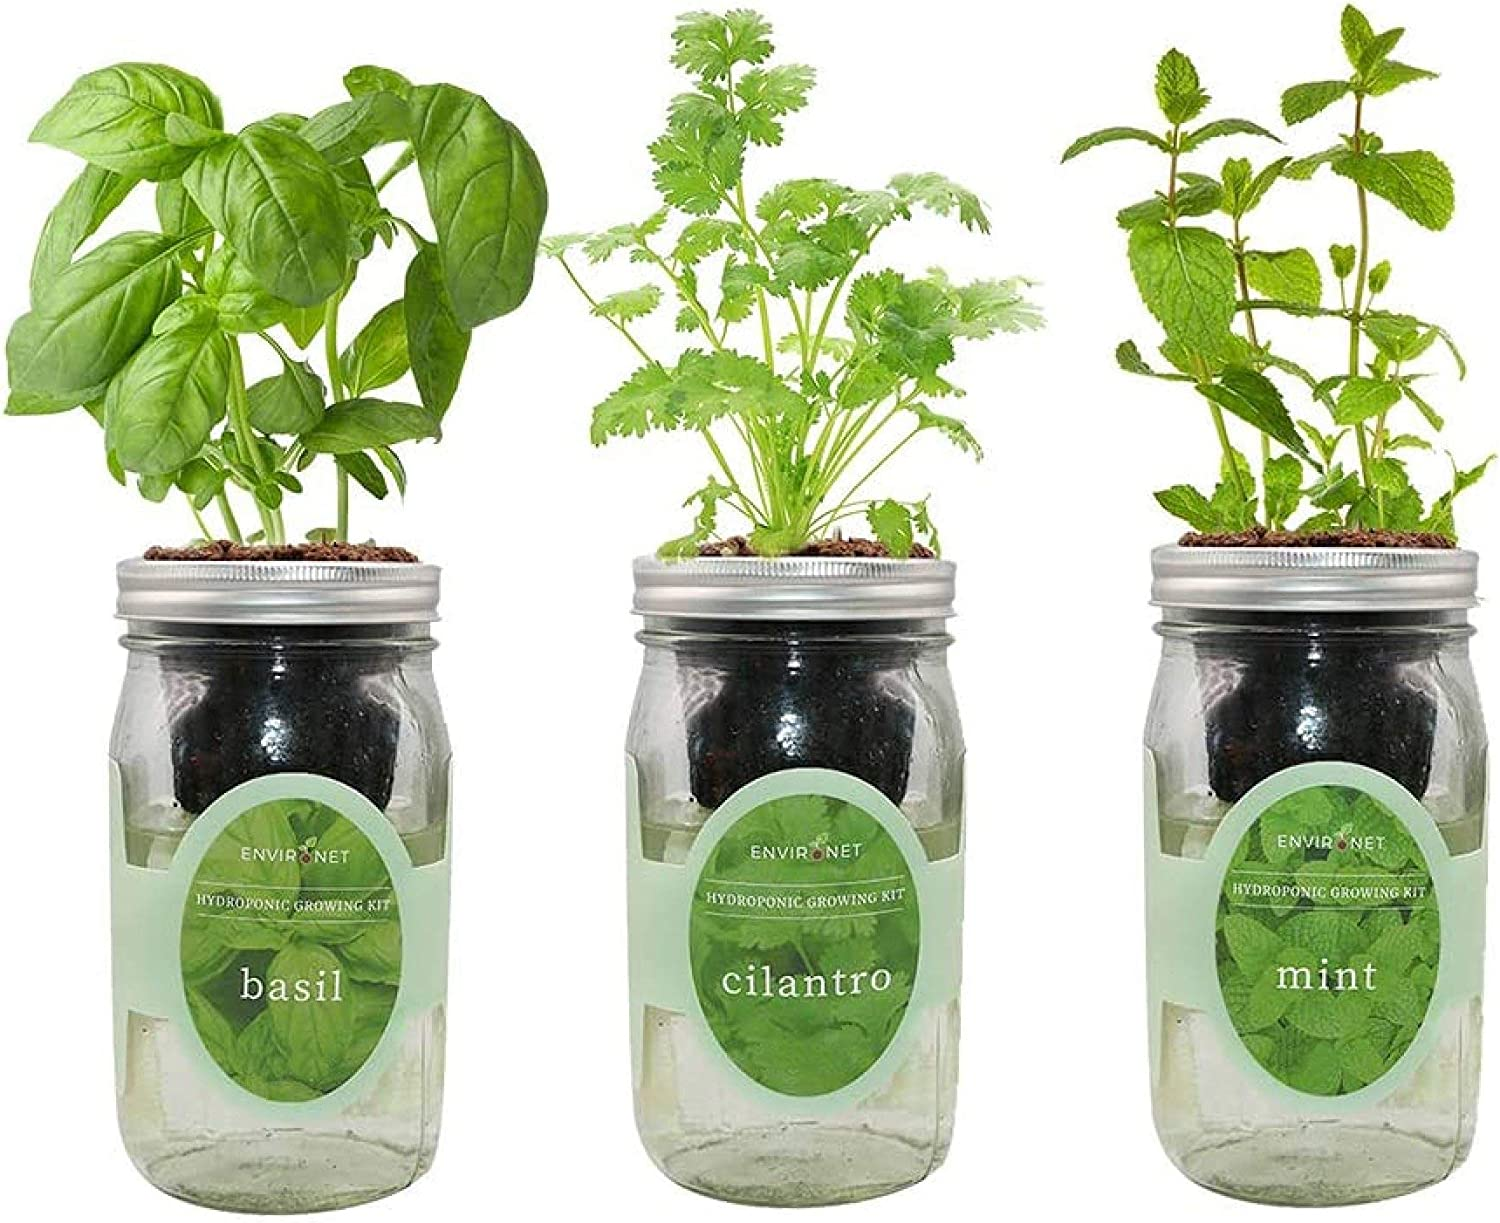 Environet Hydroponic Herb Growing Kit Set, Self-Watering Mason Jar Herb Garden Starter Kit Indoor, Grow Your Own Herbs from Seeds (Basil, Cilantro and Mint)